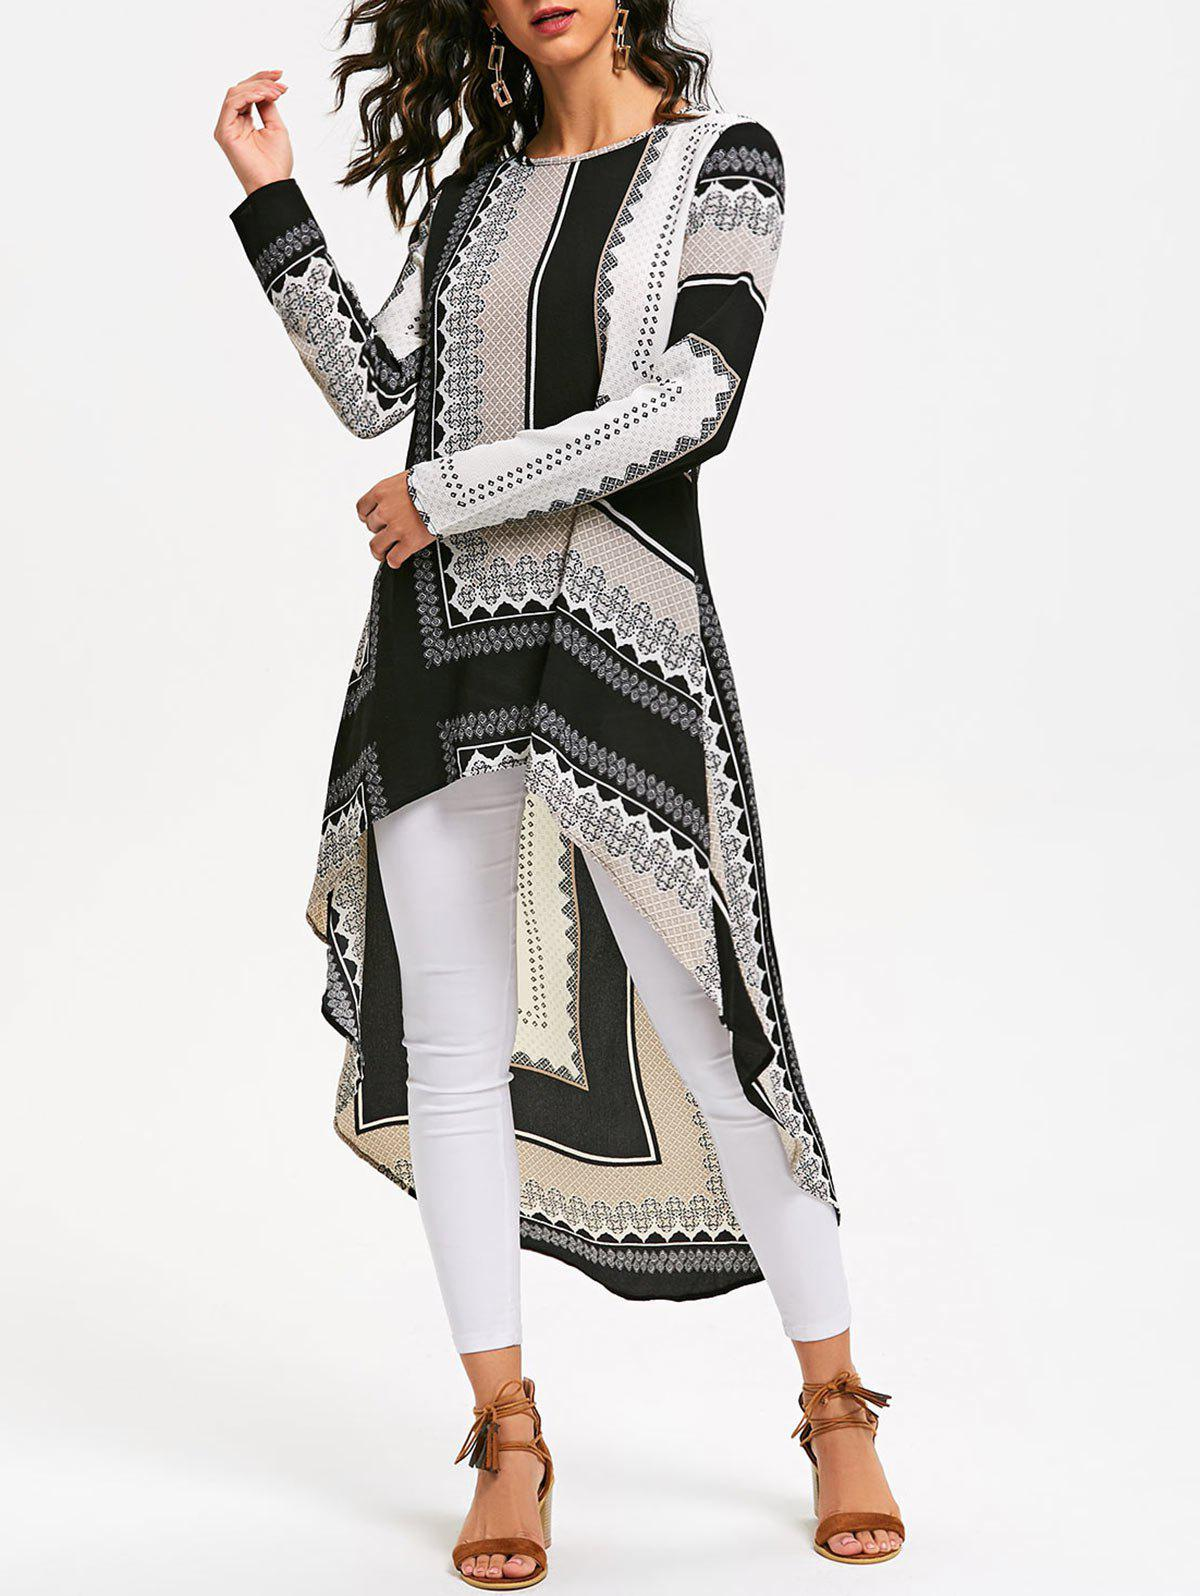 Tribal Print High Low Long Blouse DressWOMEN<br><br>Size: XL; Color: COLORMIX; Style: Casual; Material: Polyester; Silhouette: Asymmetrical; Dress Type: Tribal Dress; Dresses Length: Mid-Calf; Neckline: Round Collar; Sleeve Length: Long Sleeves; Pattern Type: Tribal Print; With Belt: No; Season: Fall,Spring; Weight: 0.2500kg; Package Contents: 1 x Dress; Occasion: Casual;